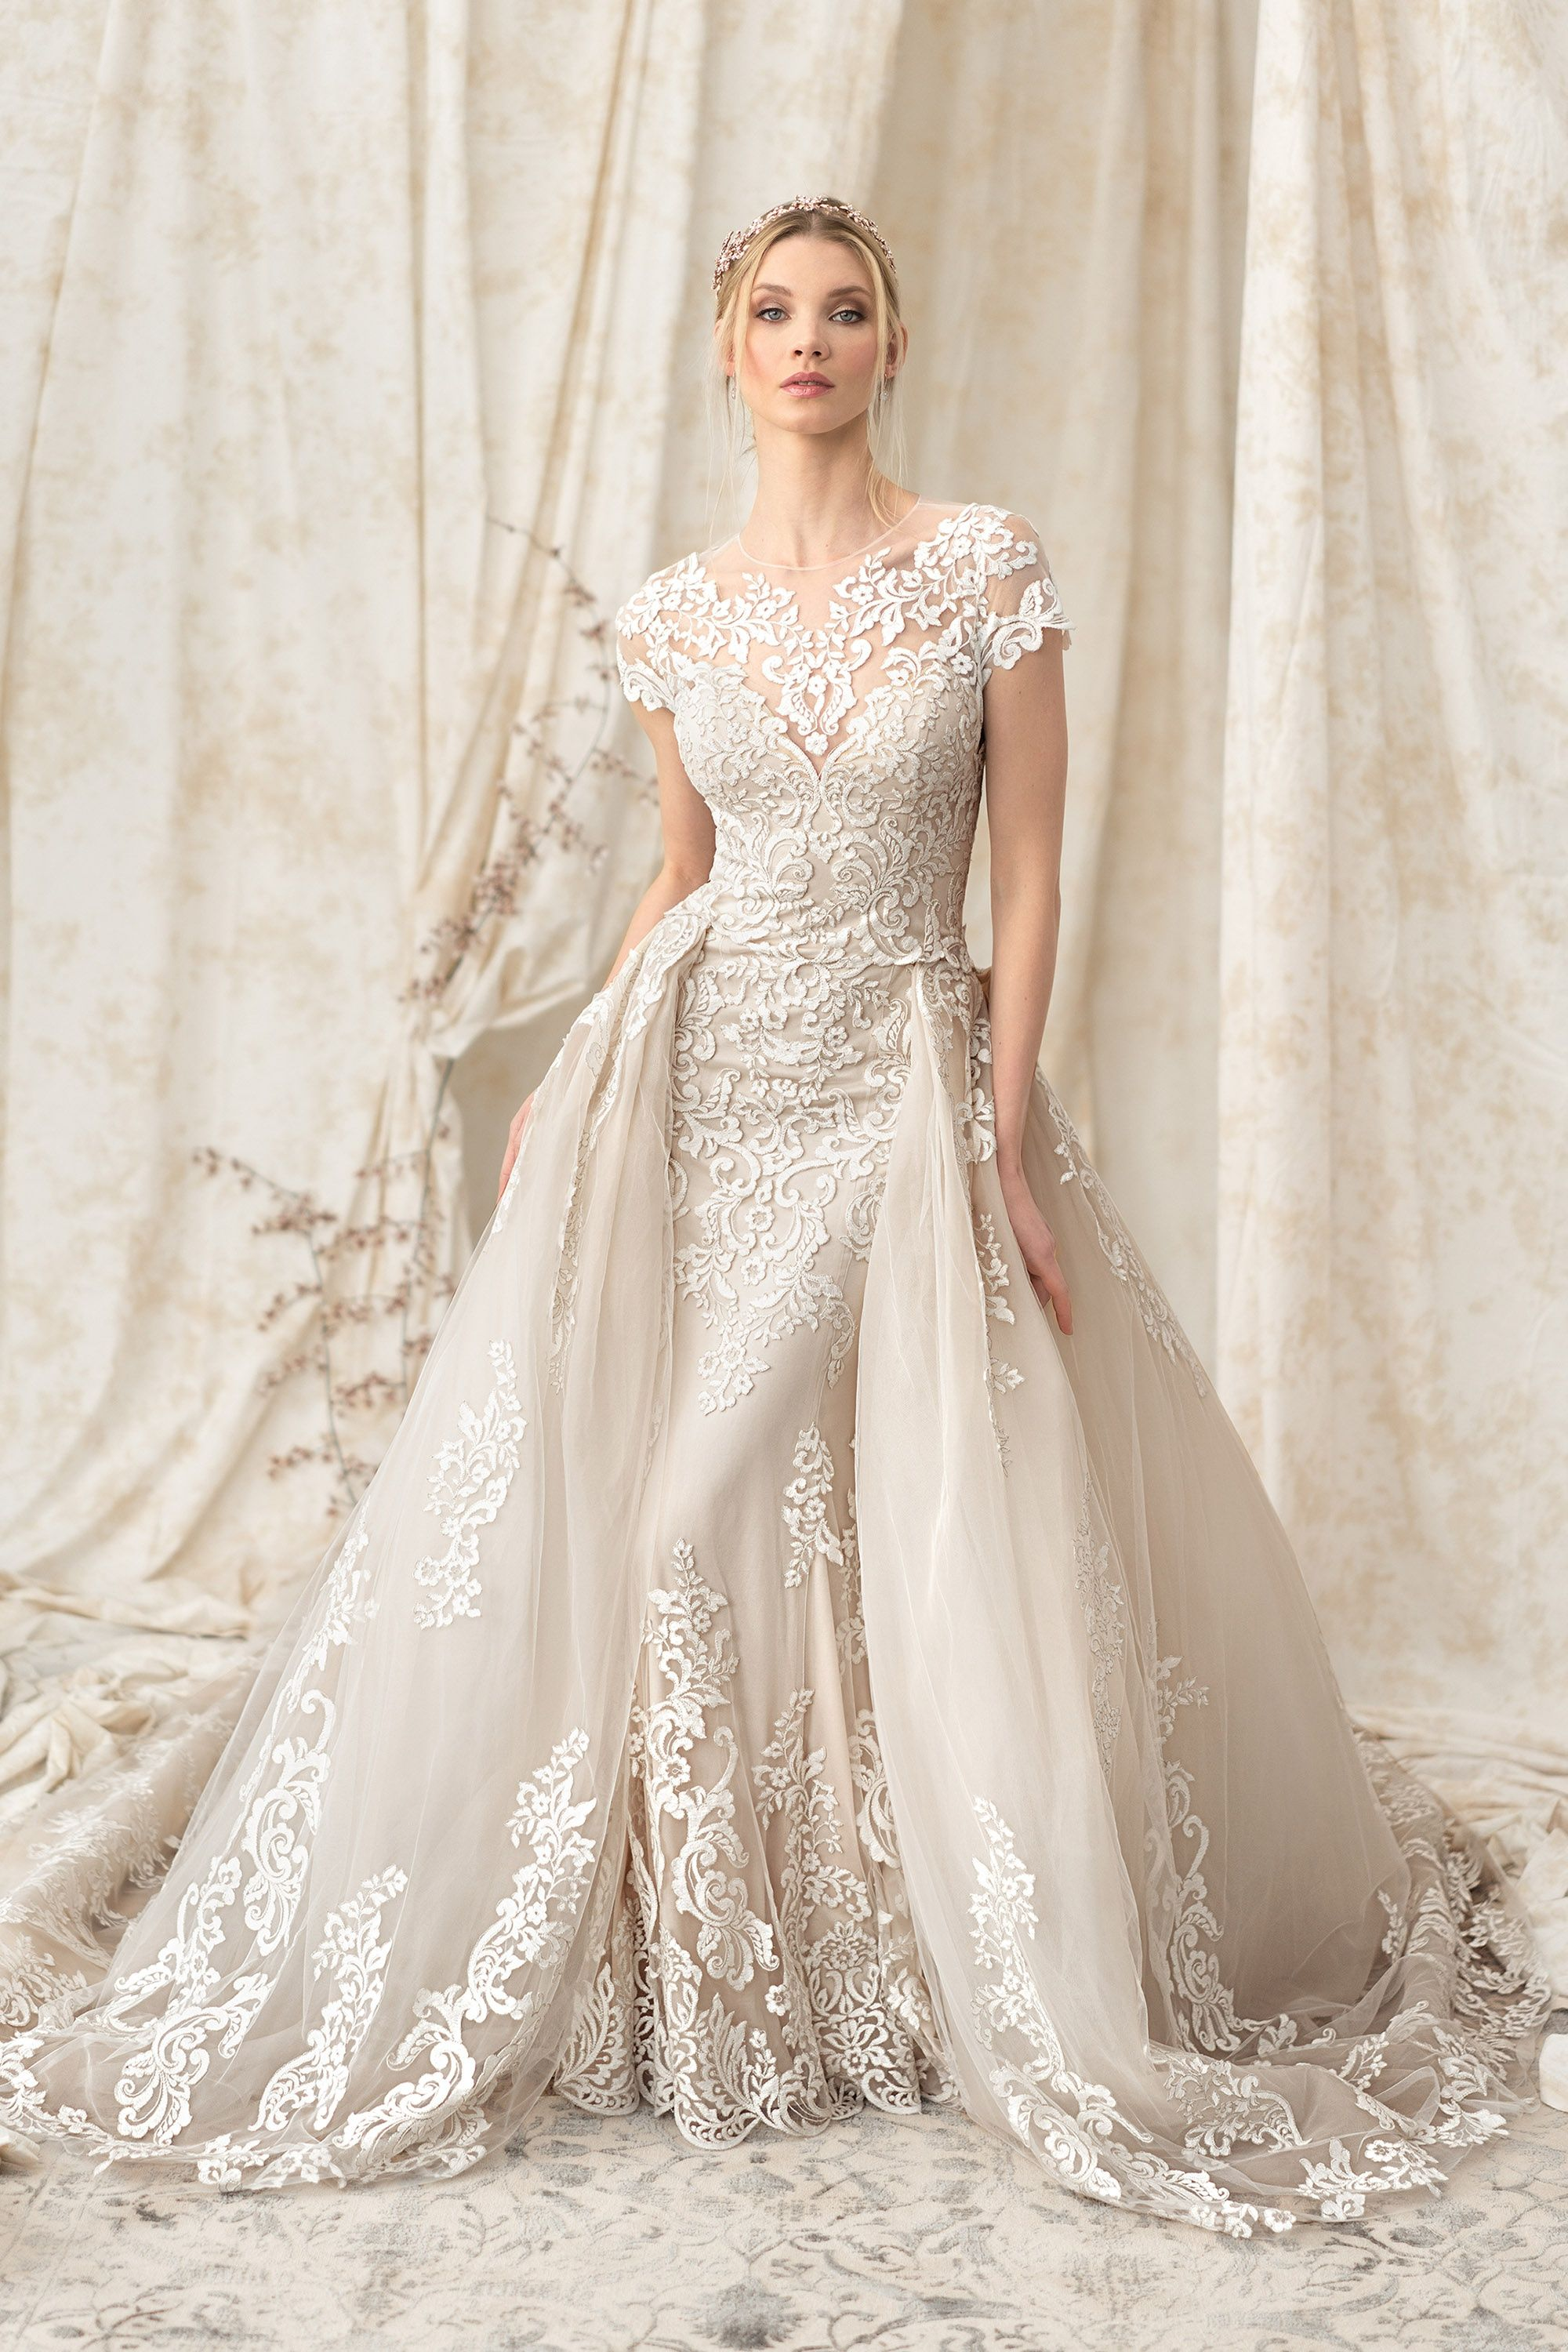 ... Signature- Fit and Flare Gown with Voluminous Detachable Train The  Persnickety Bride will have Justin Alexander Dresses in stock in December  2017!!! 2177f7486b5e